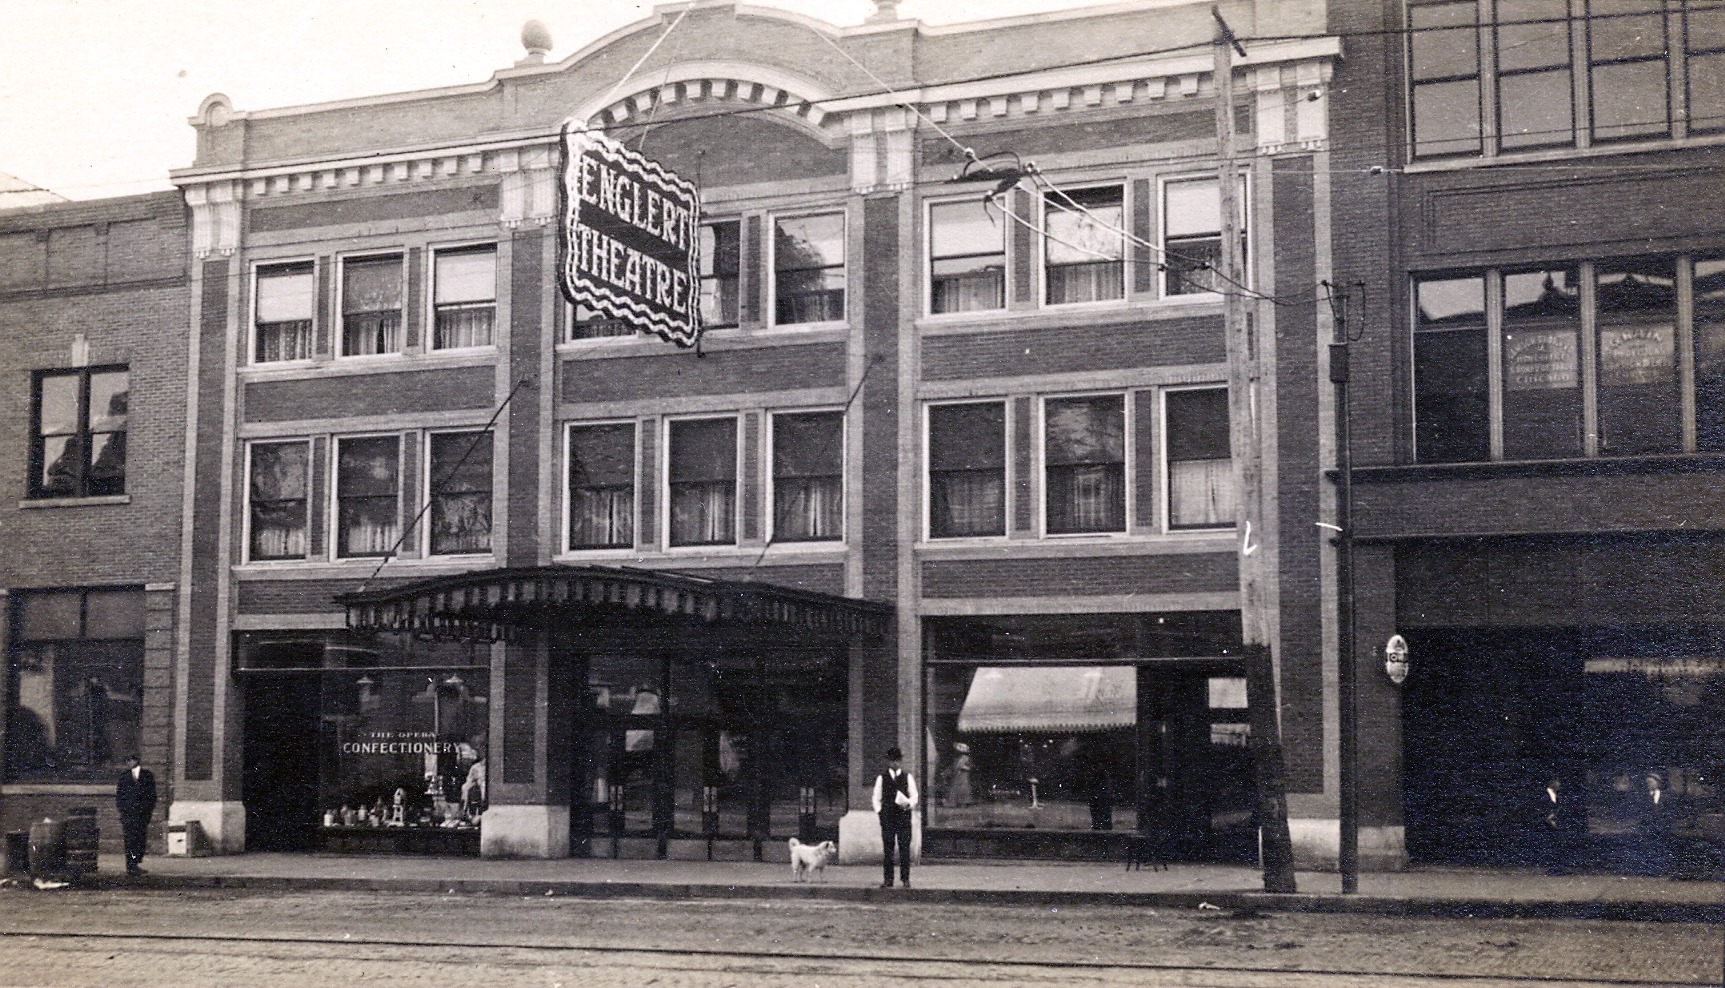 The theater as it looked in 1912